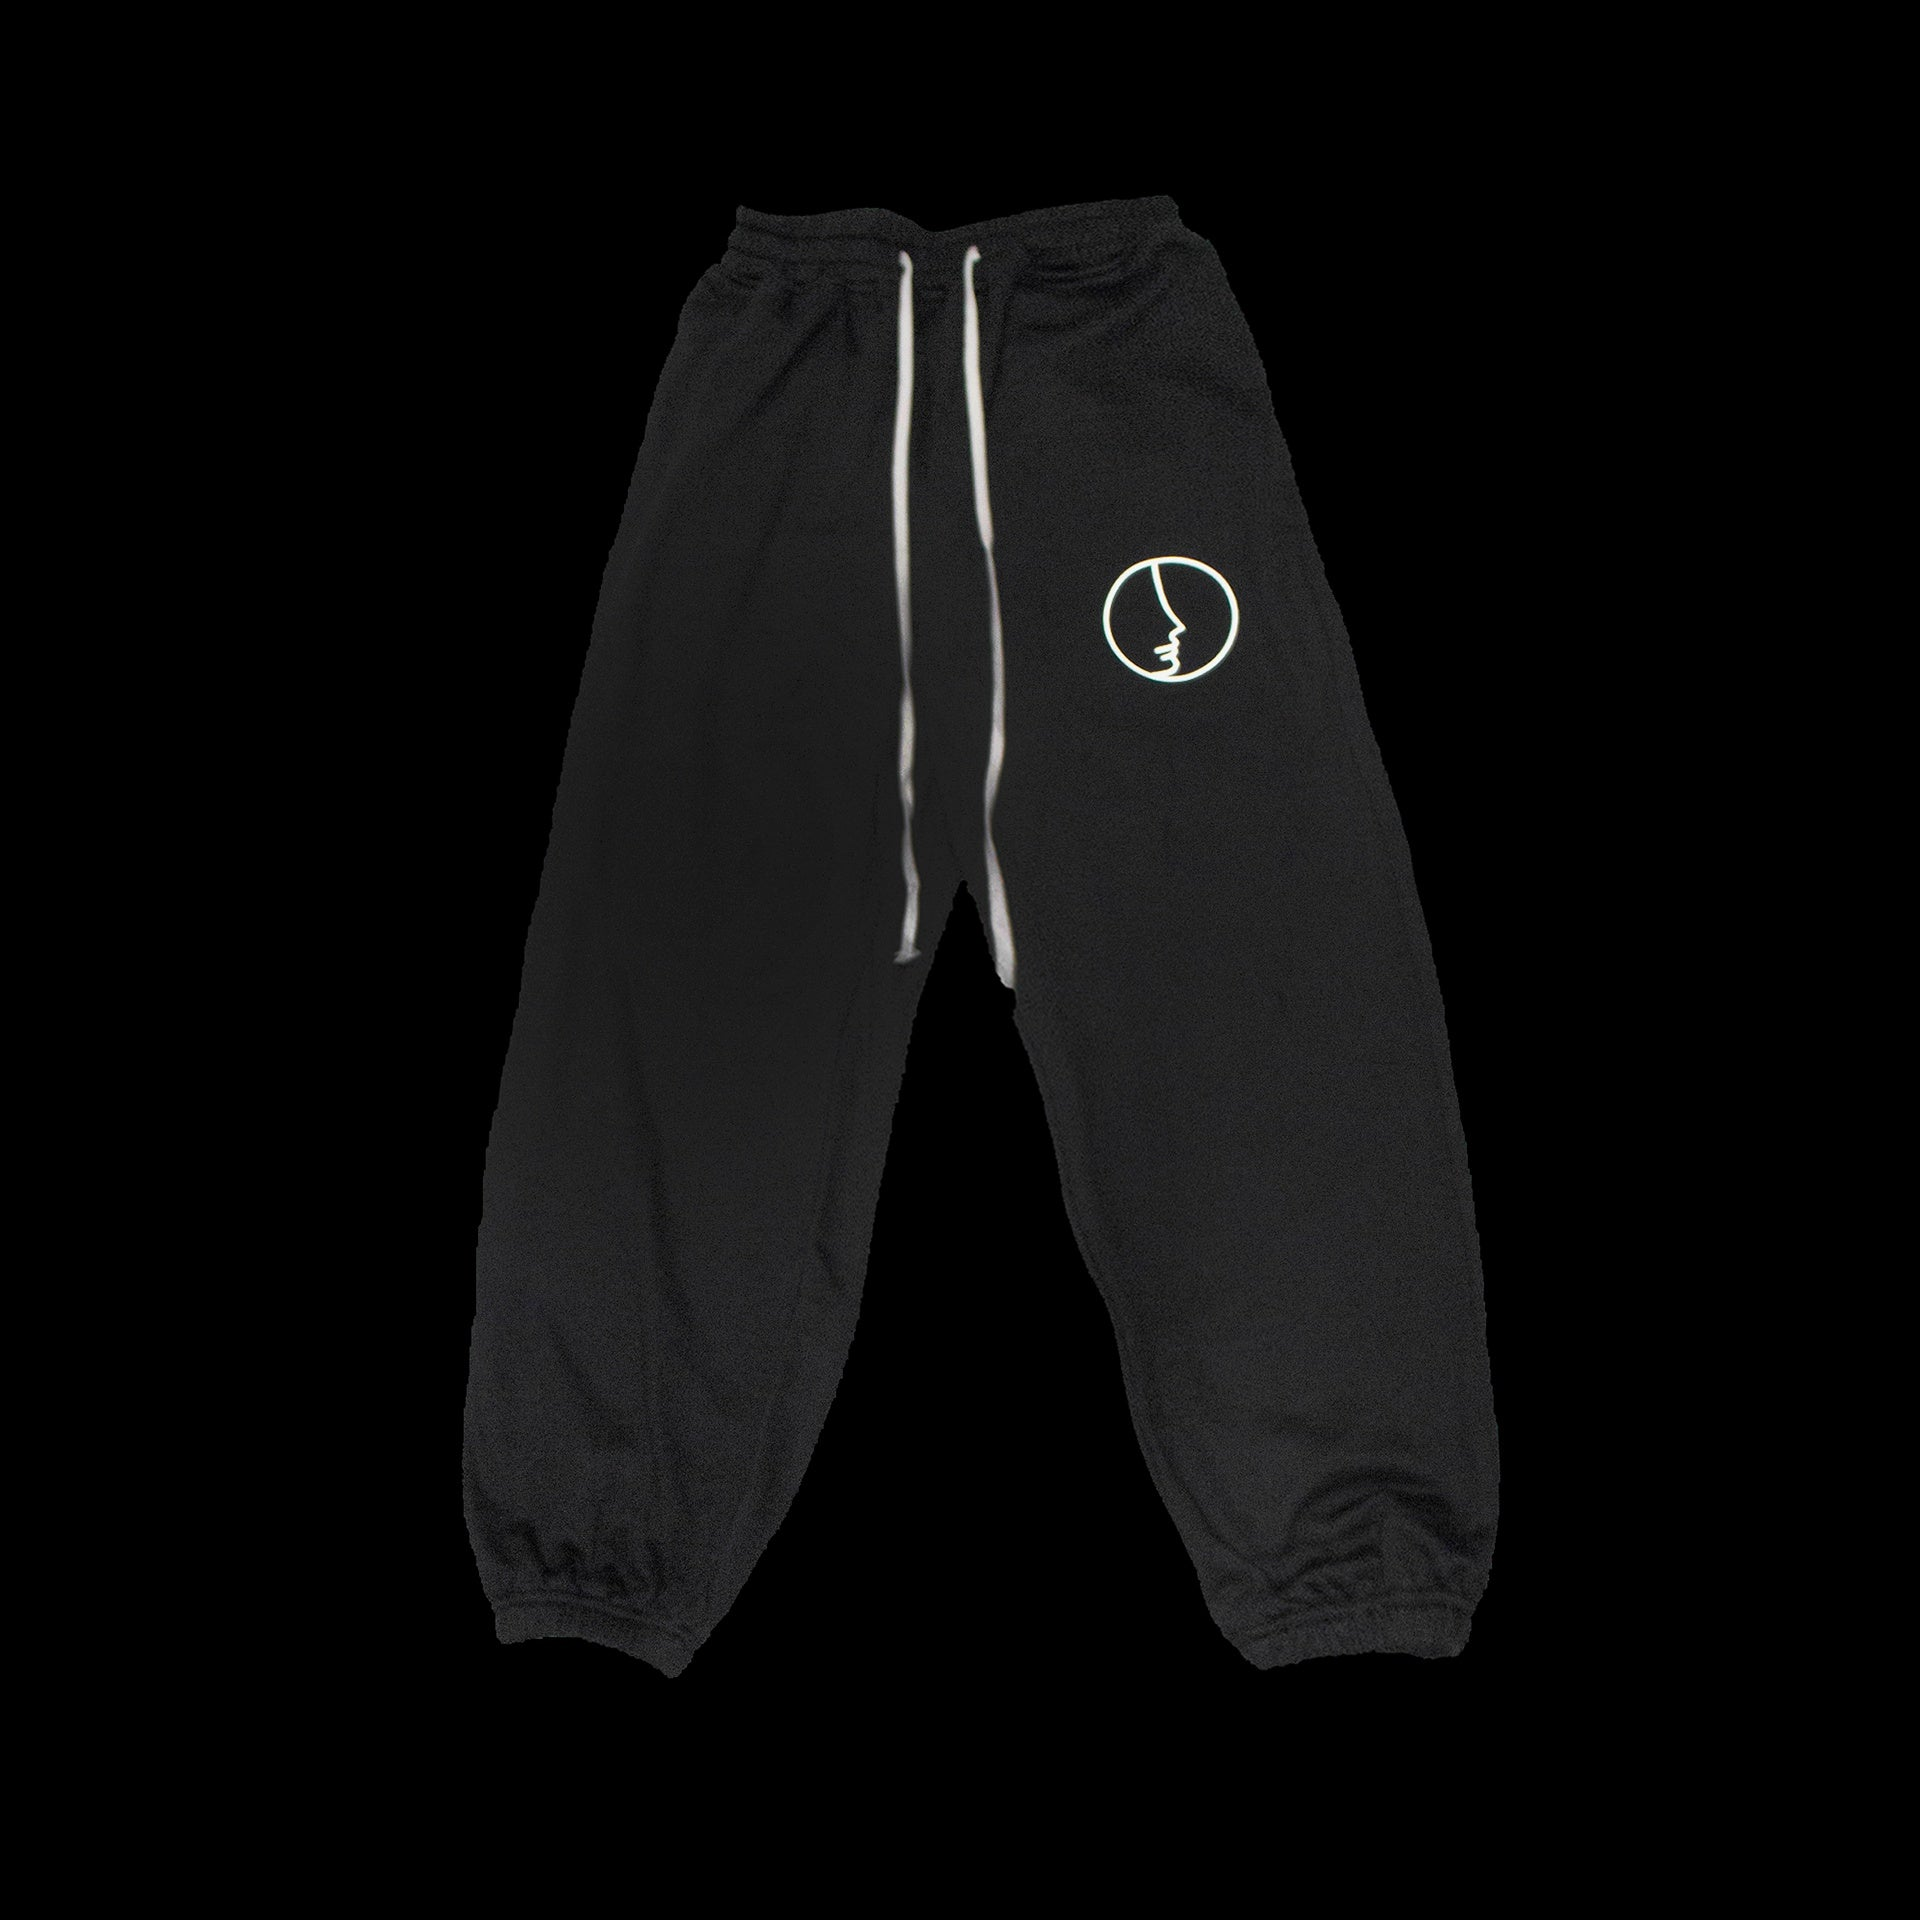 AFAMILIARFACE LOGO SWEATPANTS